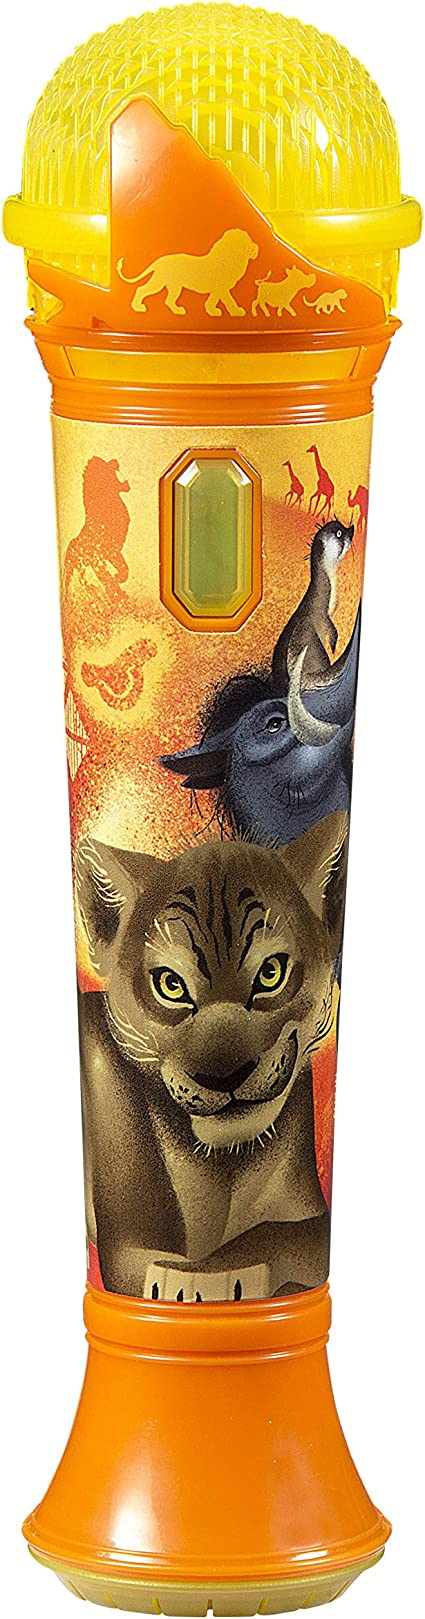 Amazon Com Lion King Sing Along Mp3 Microphone Sing To Built In Music Or Connect Your Audio Device Sing To Whatever You Like Toys Games